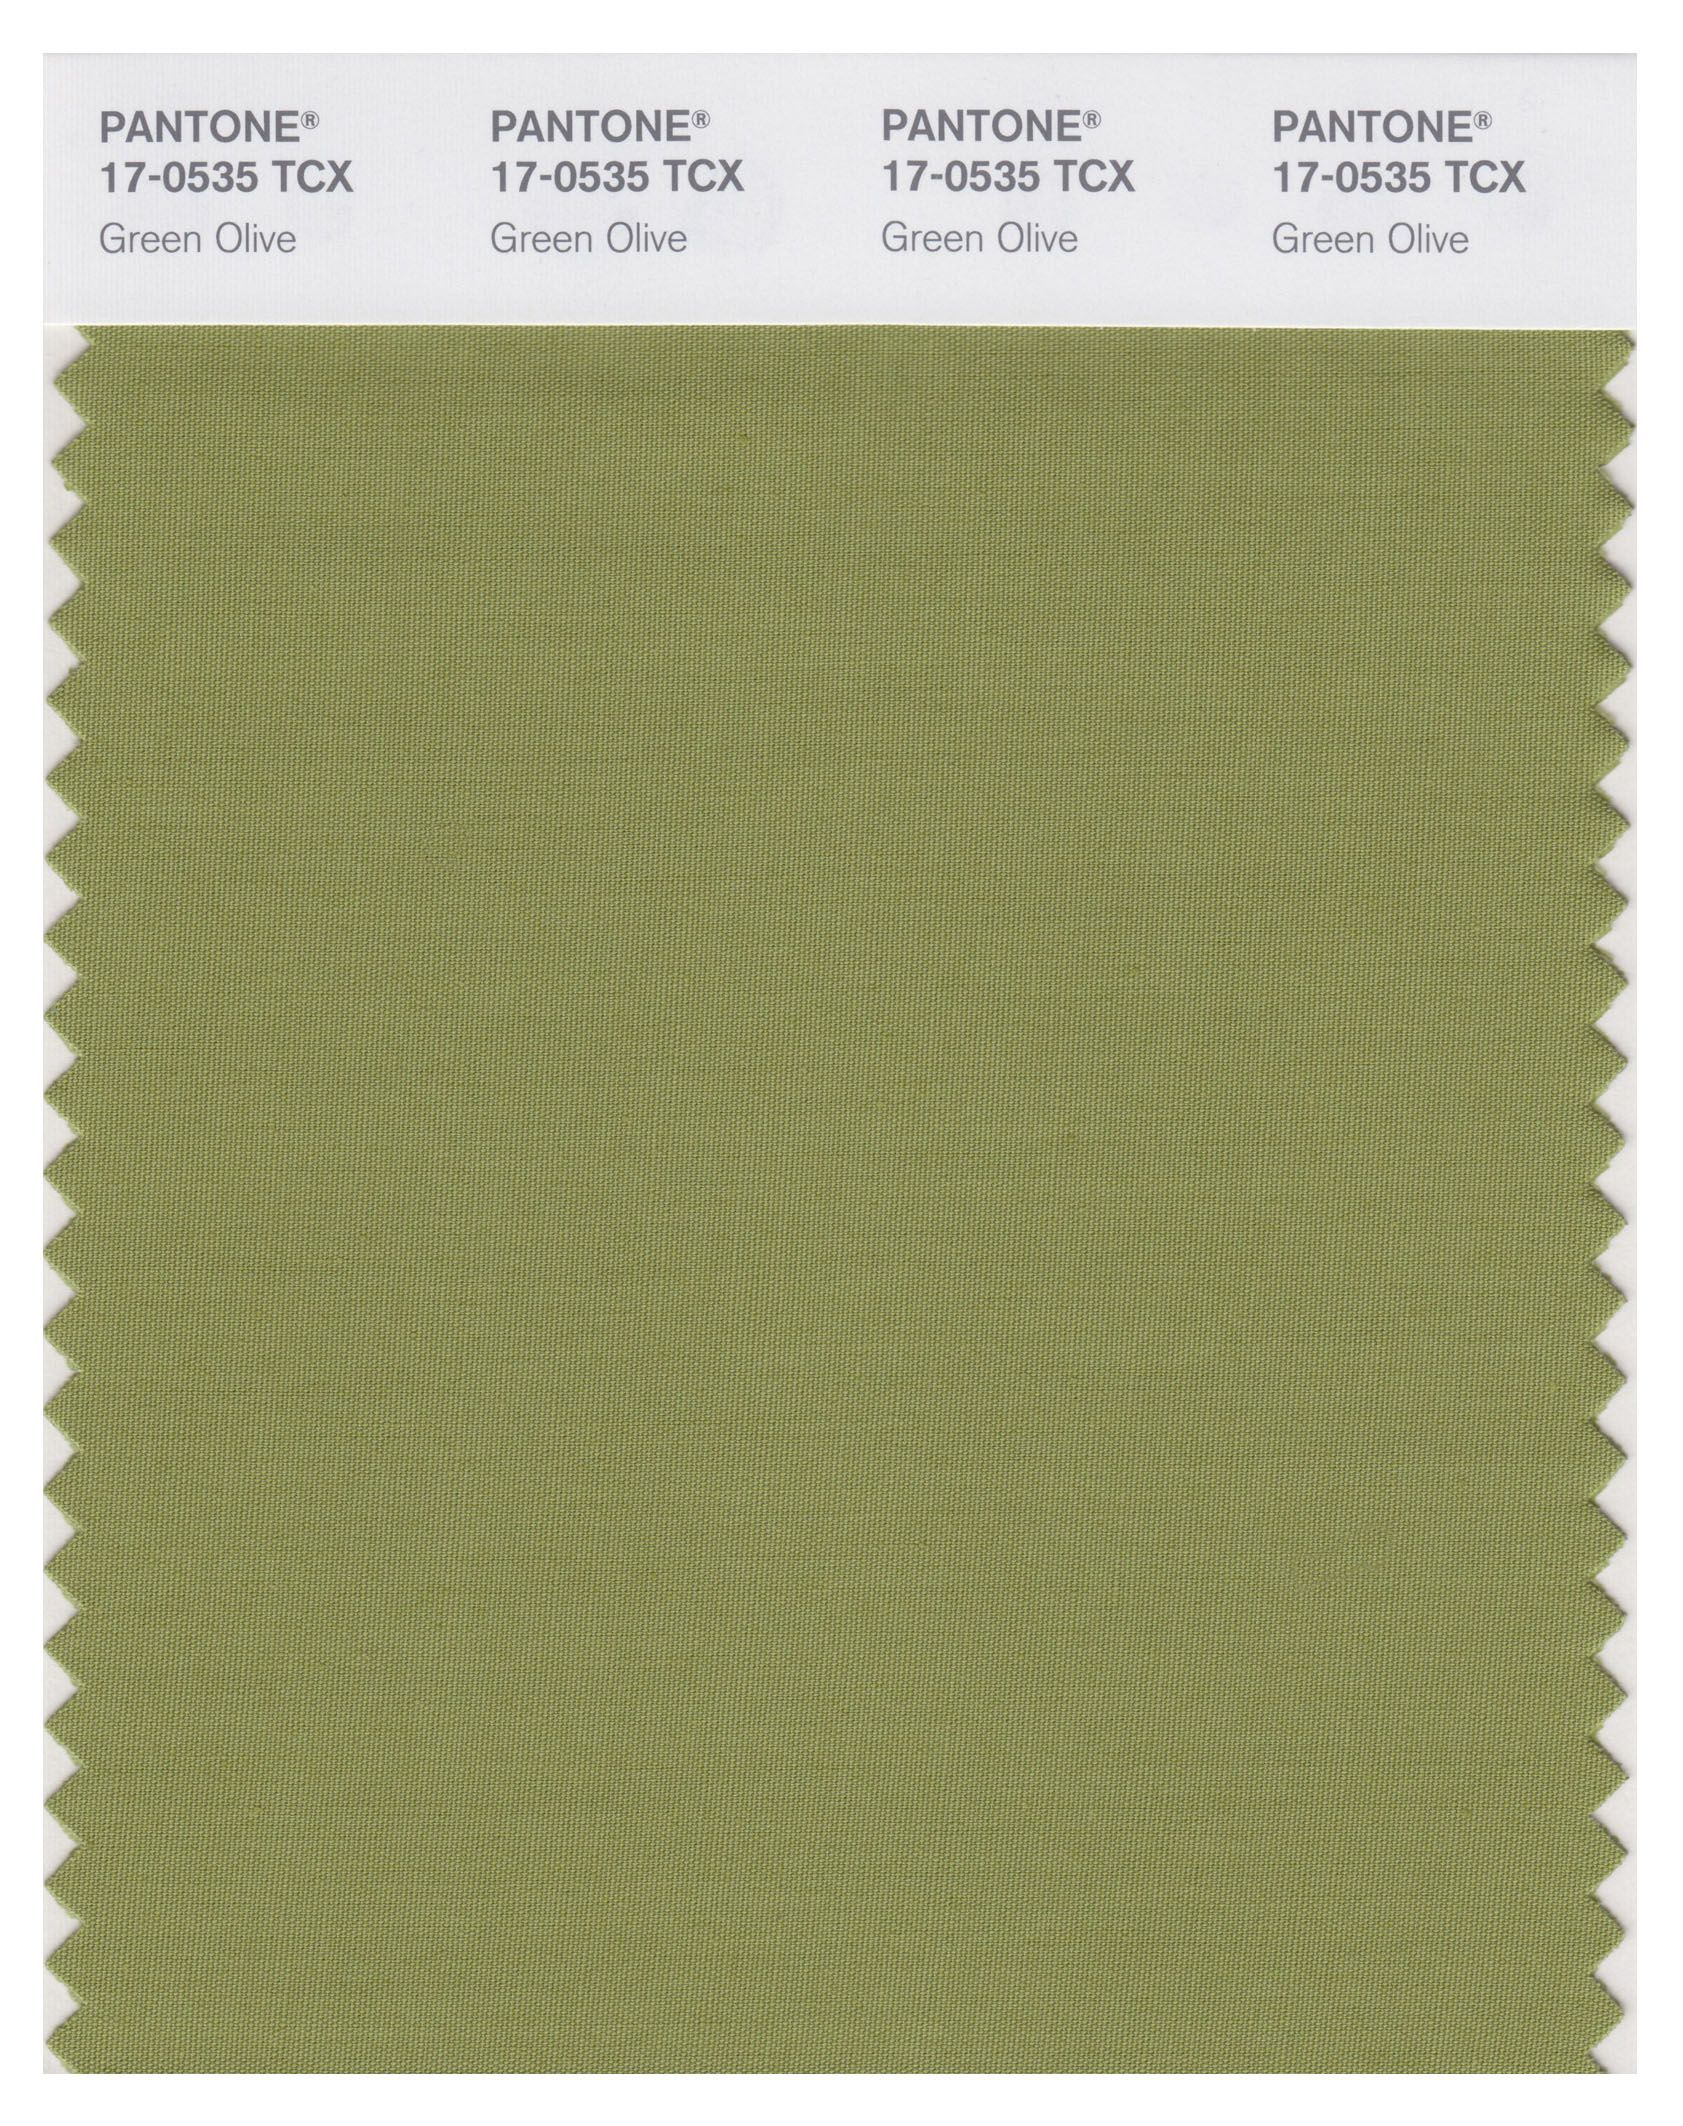 Match for green ribbon between this and sage green Sage green pantone